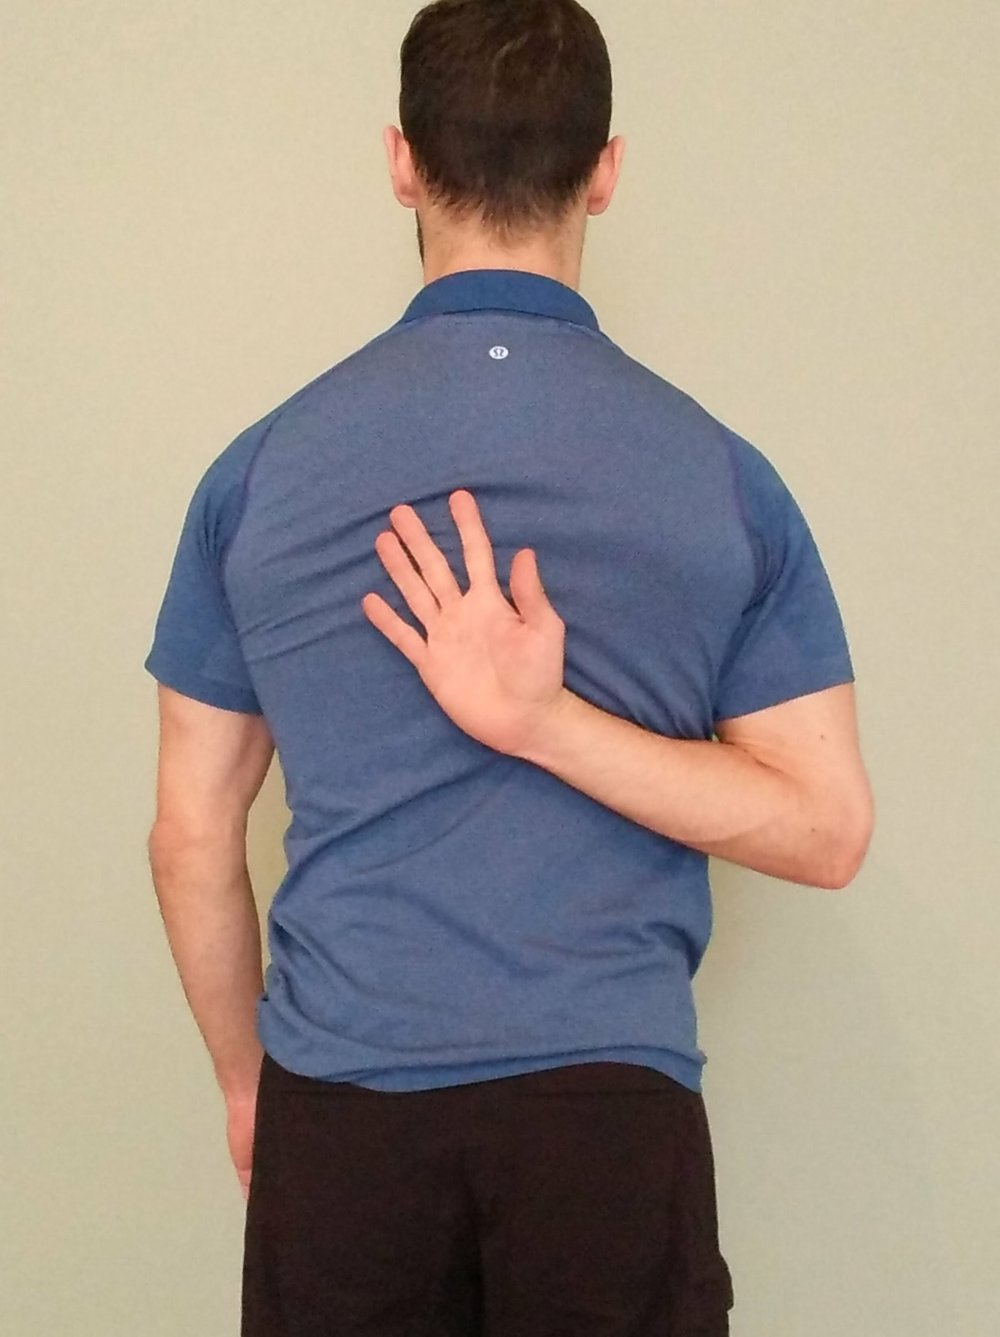 Hand behind back stretch